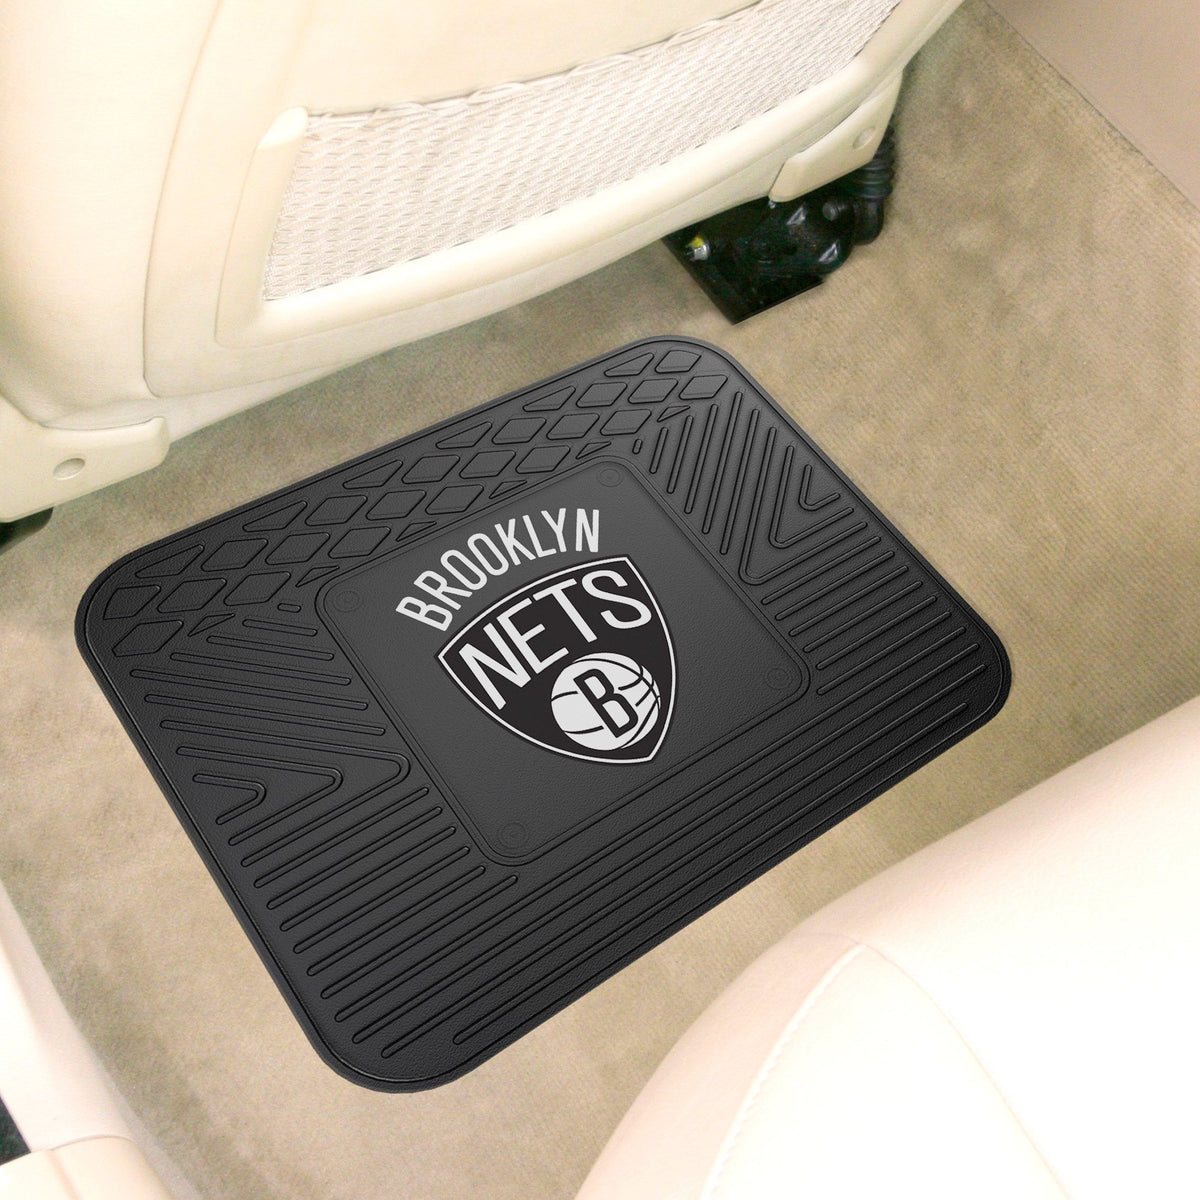 NBA - Utility Mat NBA Mats, Rear Car Mats, Utility Mat, NBA, Auto Fan Mats Brooklyn Nets